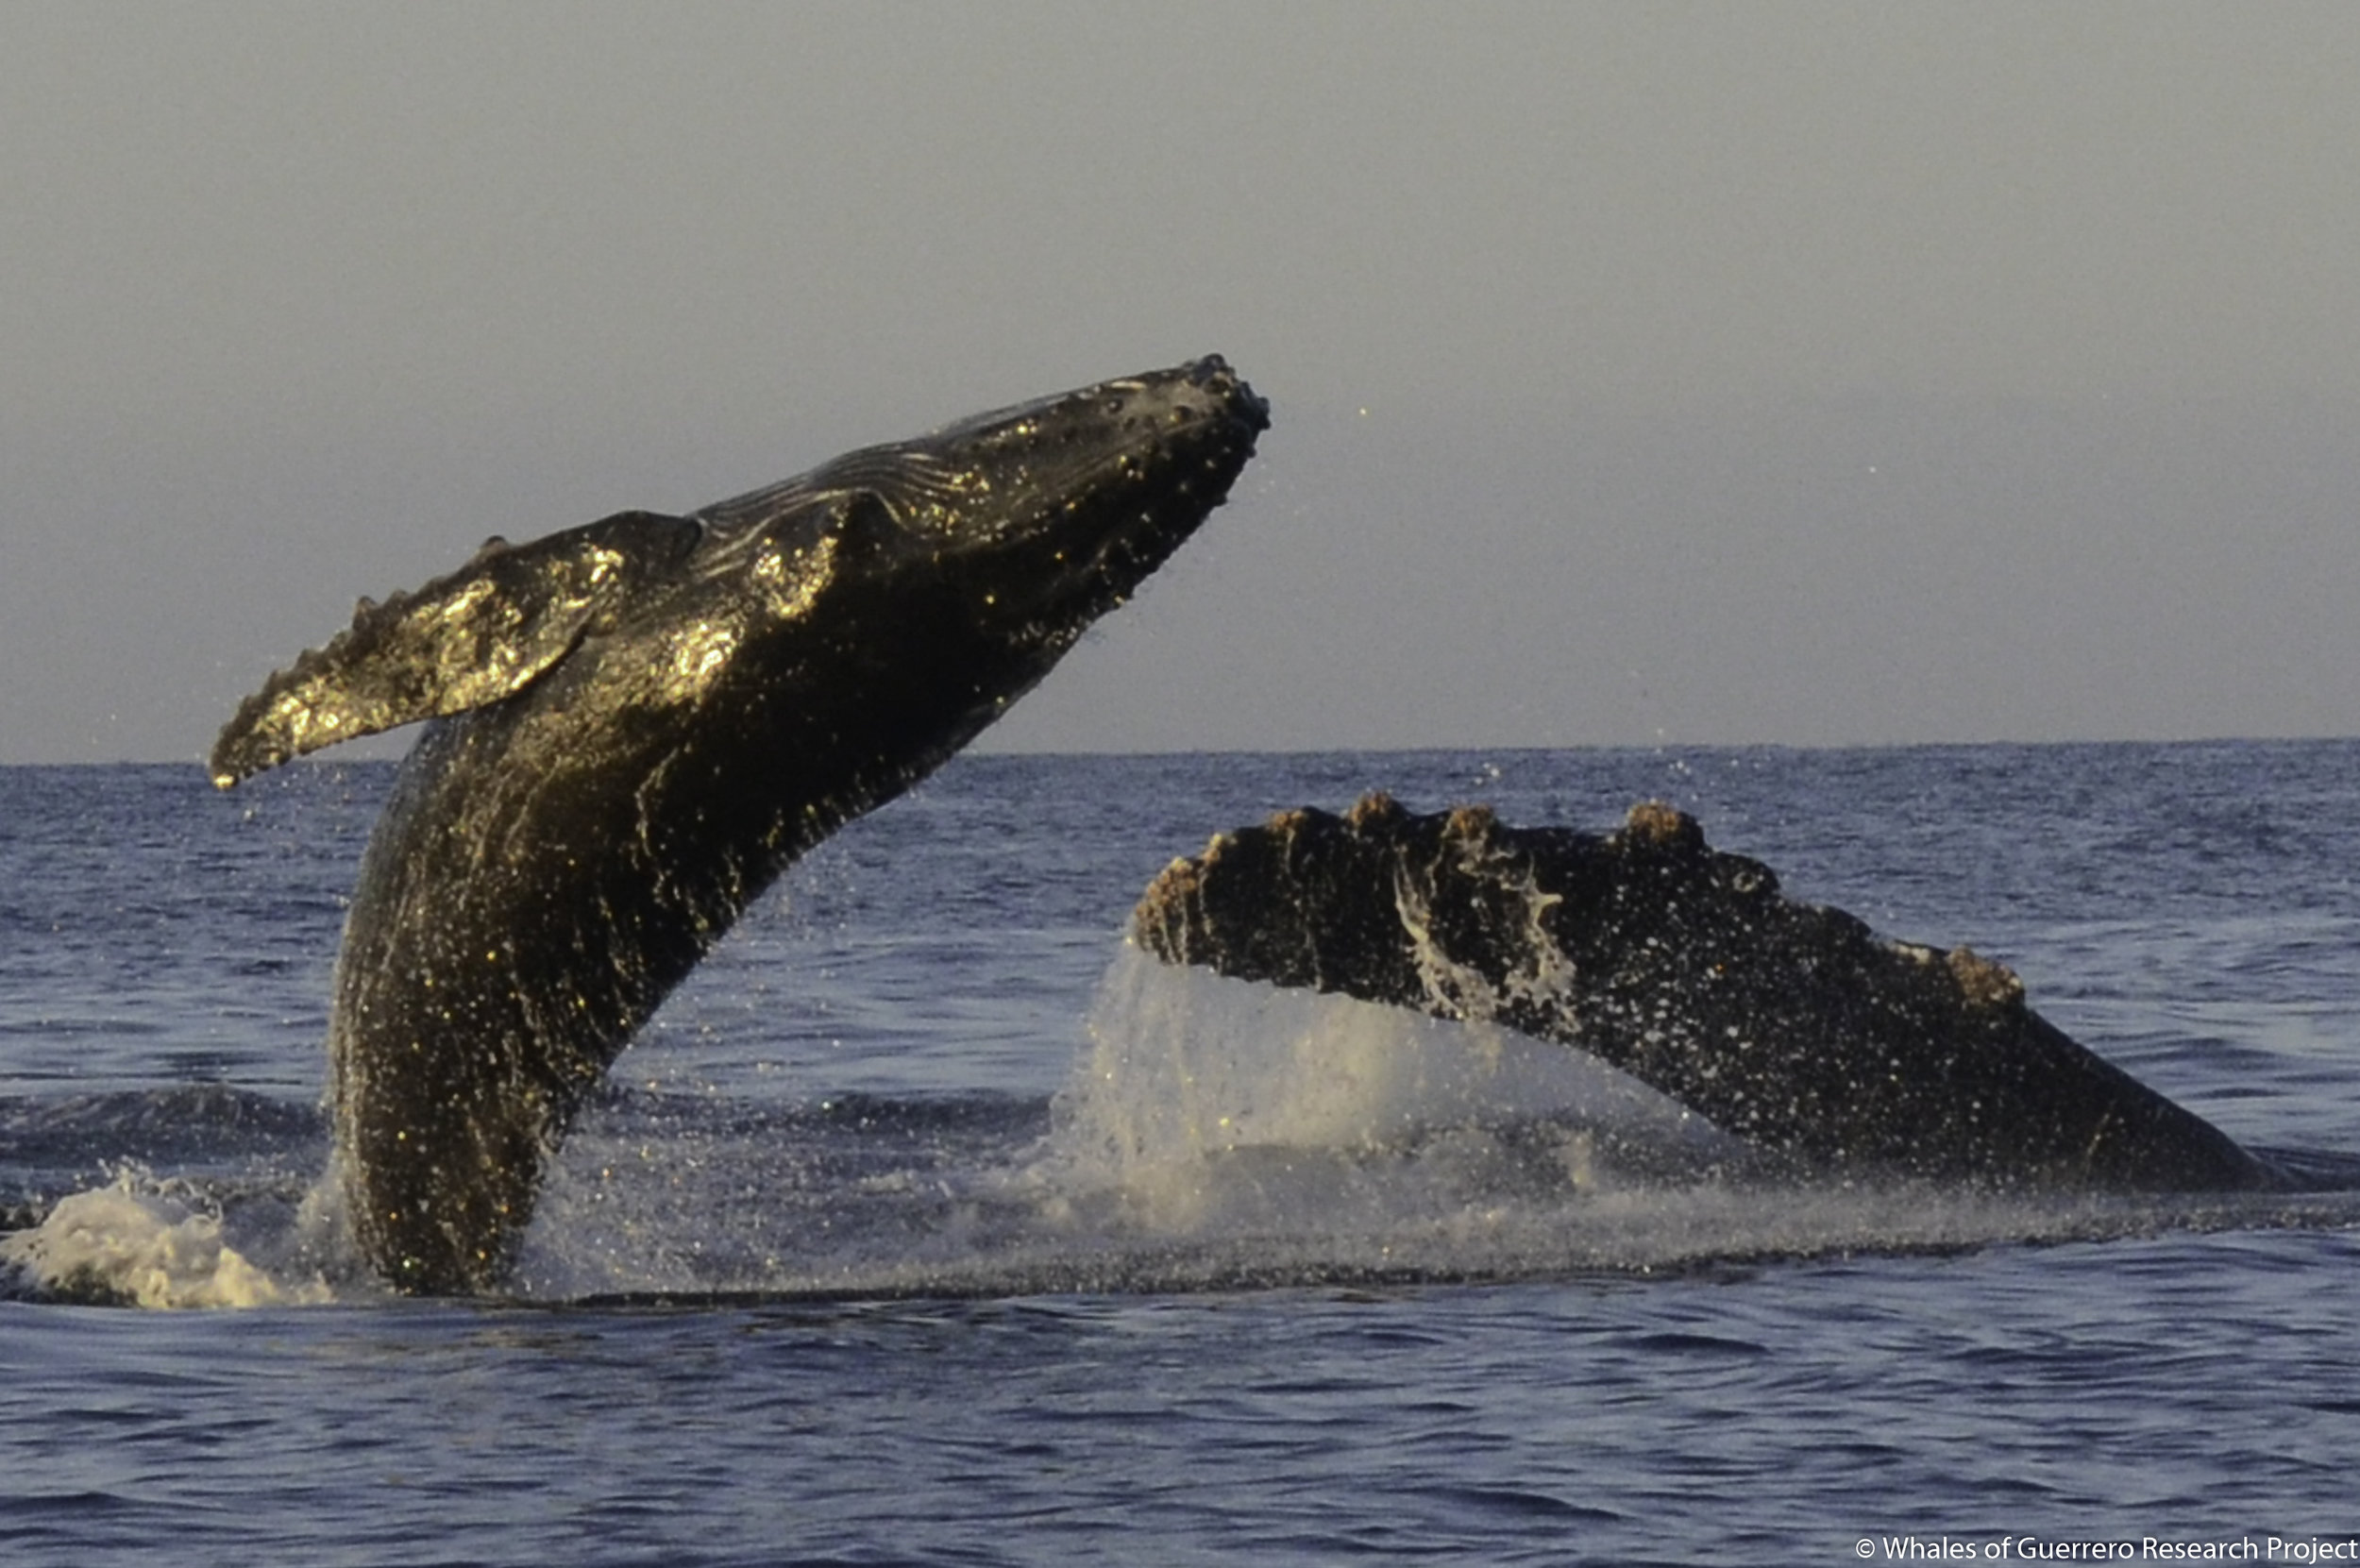 Whales of Guerrero Mexico